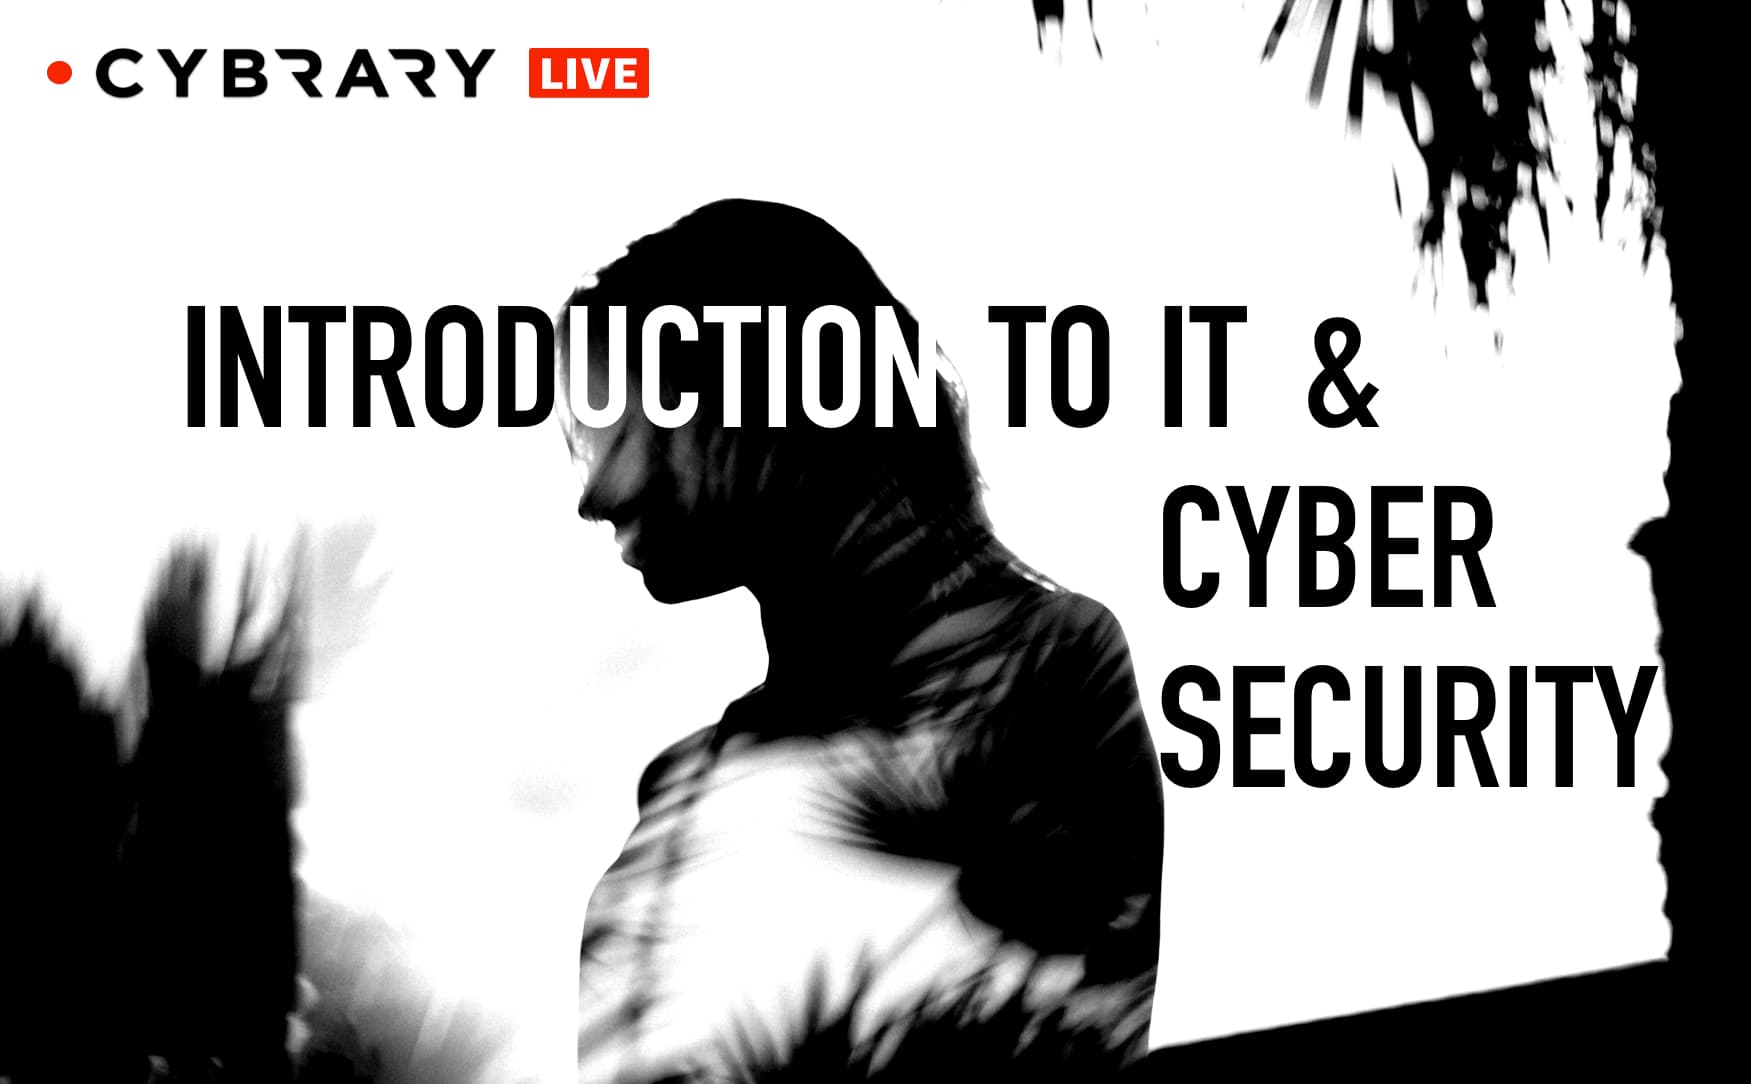 Introduction to IT and Cybersecurity